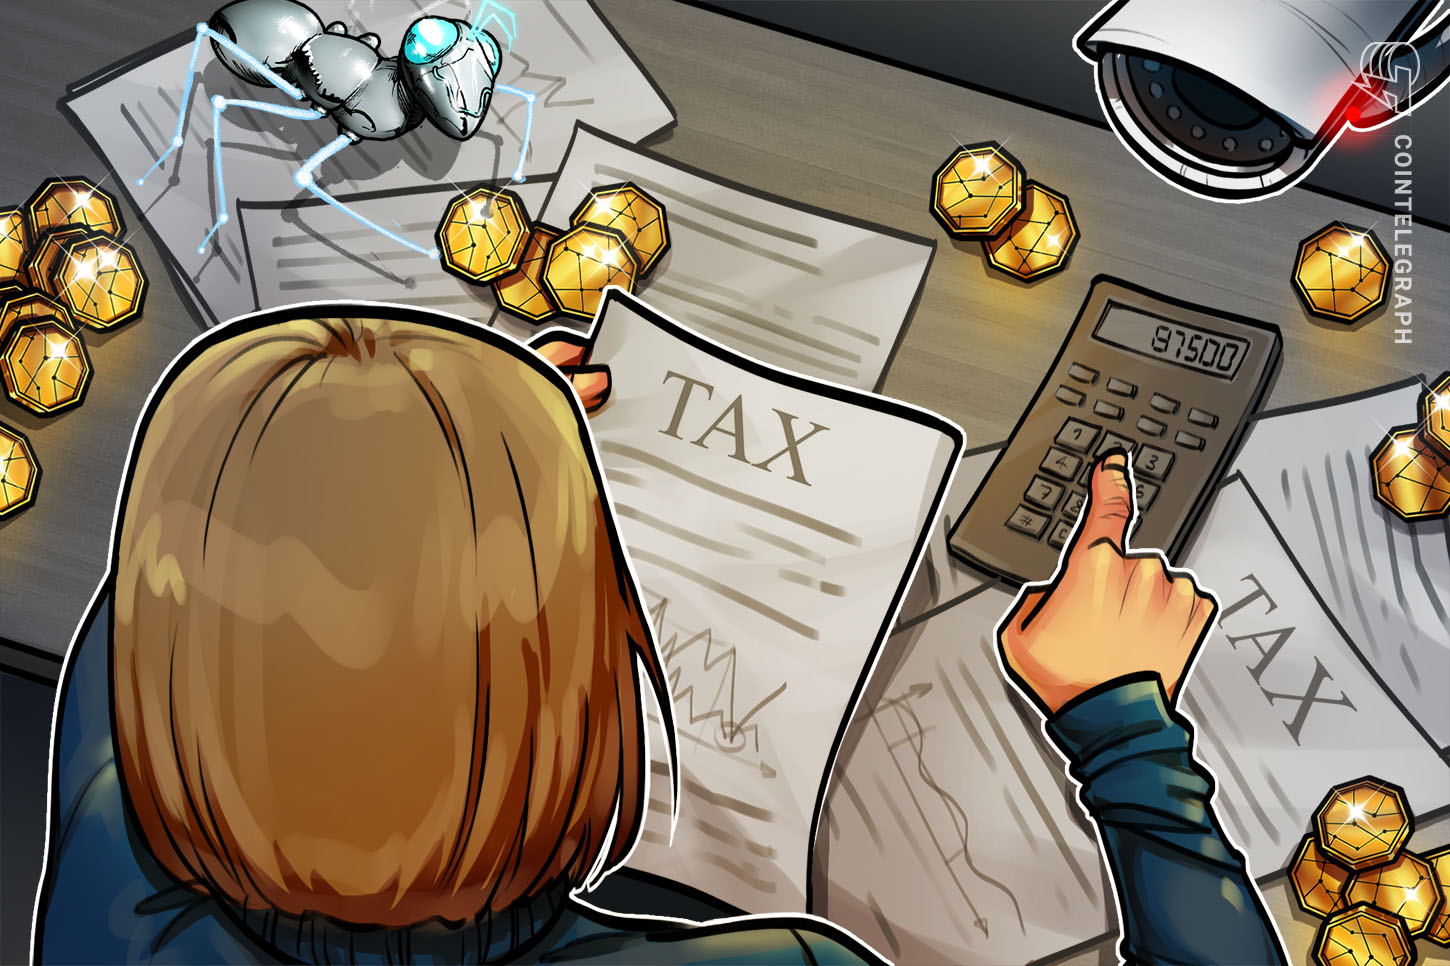 Thai tax collectors to streamline revenues with blockchain tech in 2021